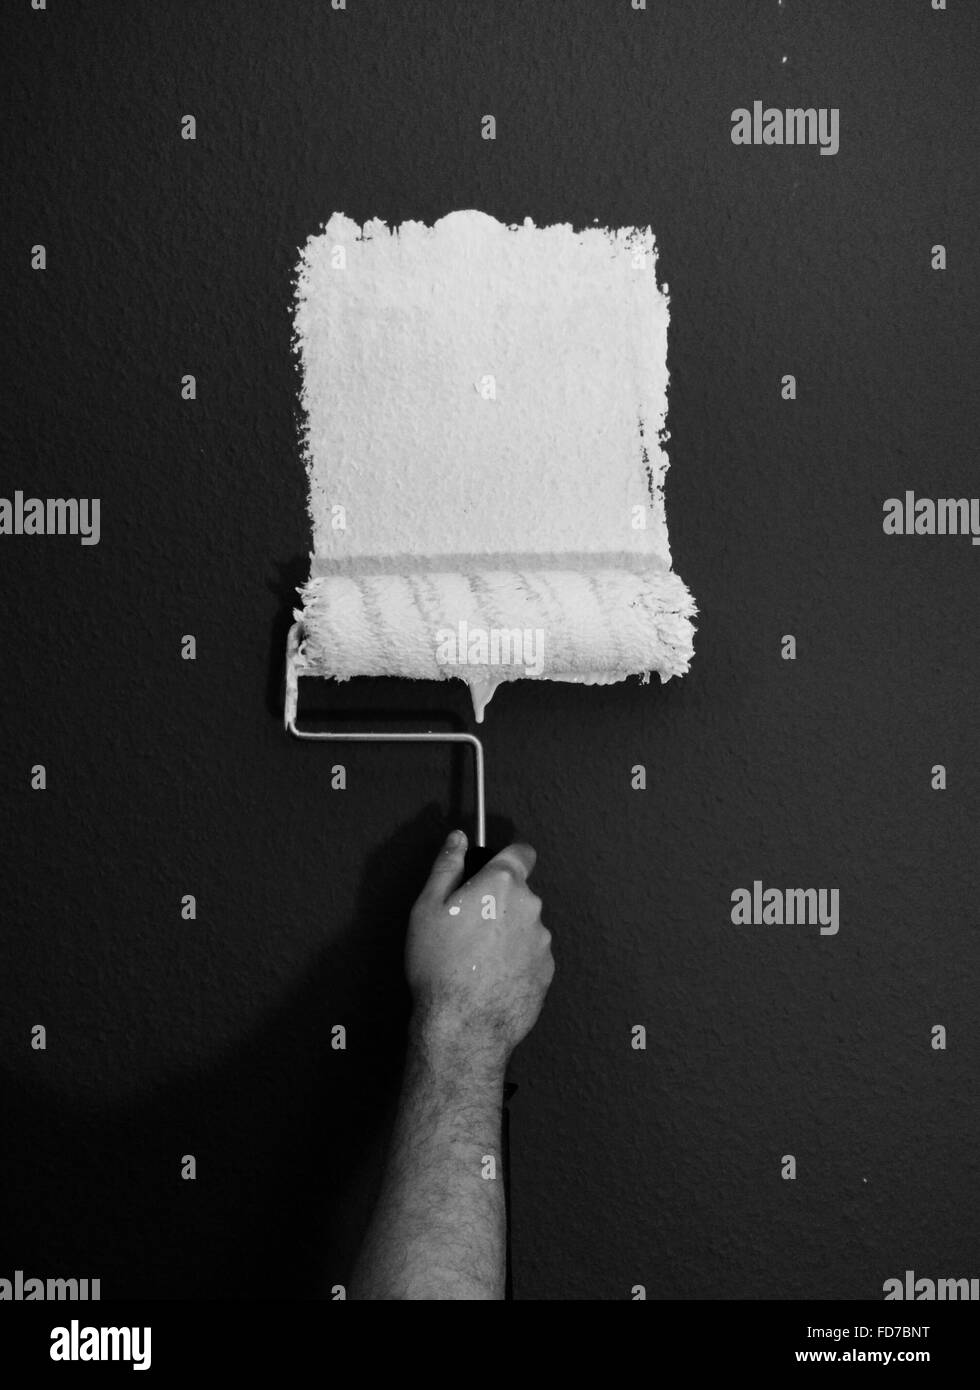 Cropped Hand Painting Wall - Stock Image